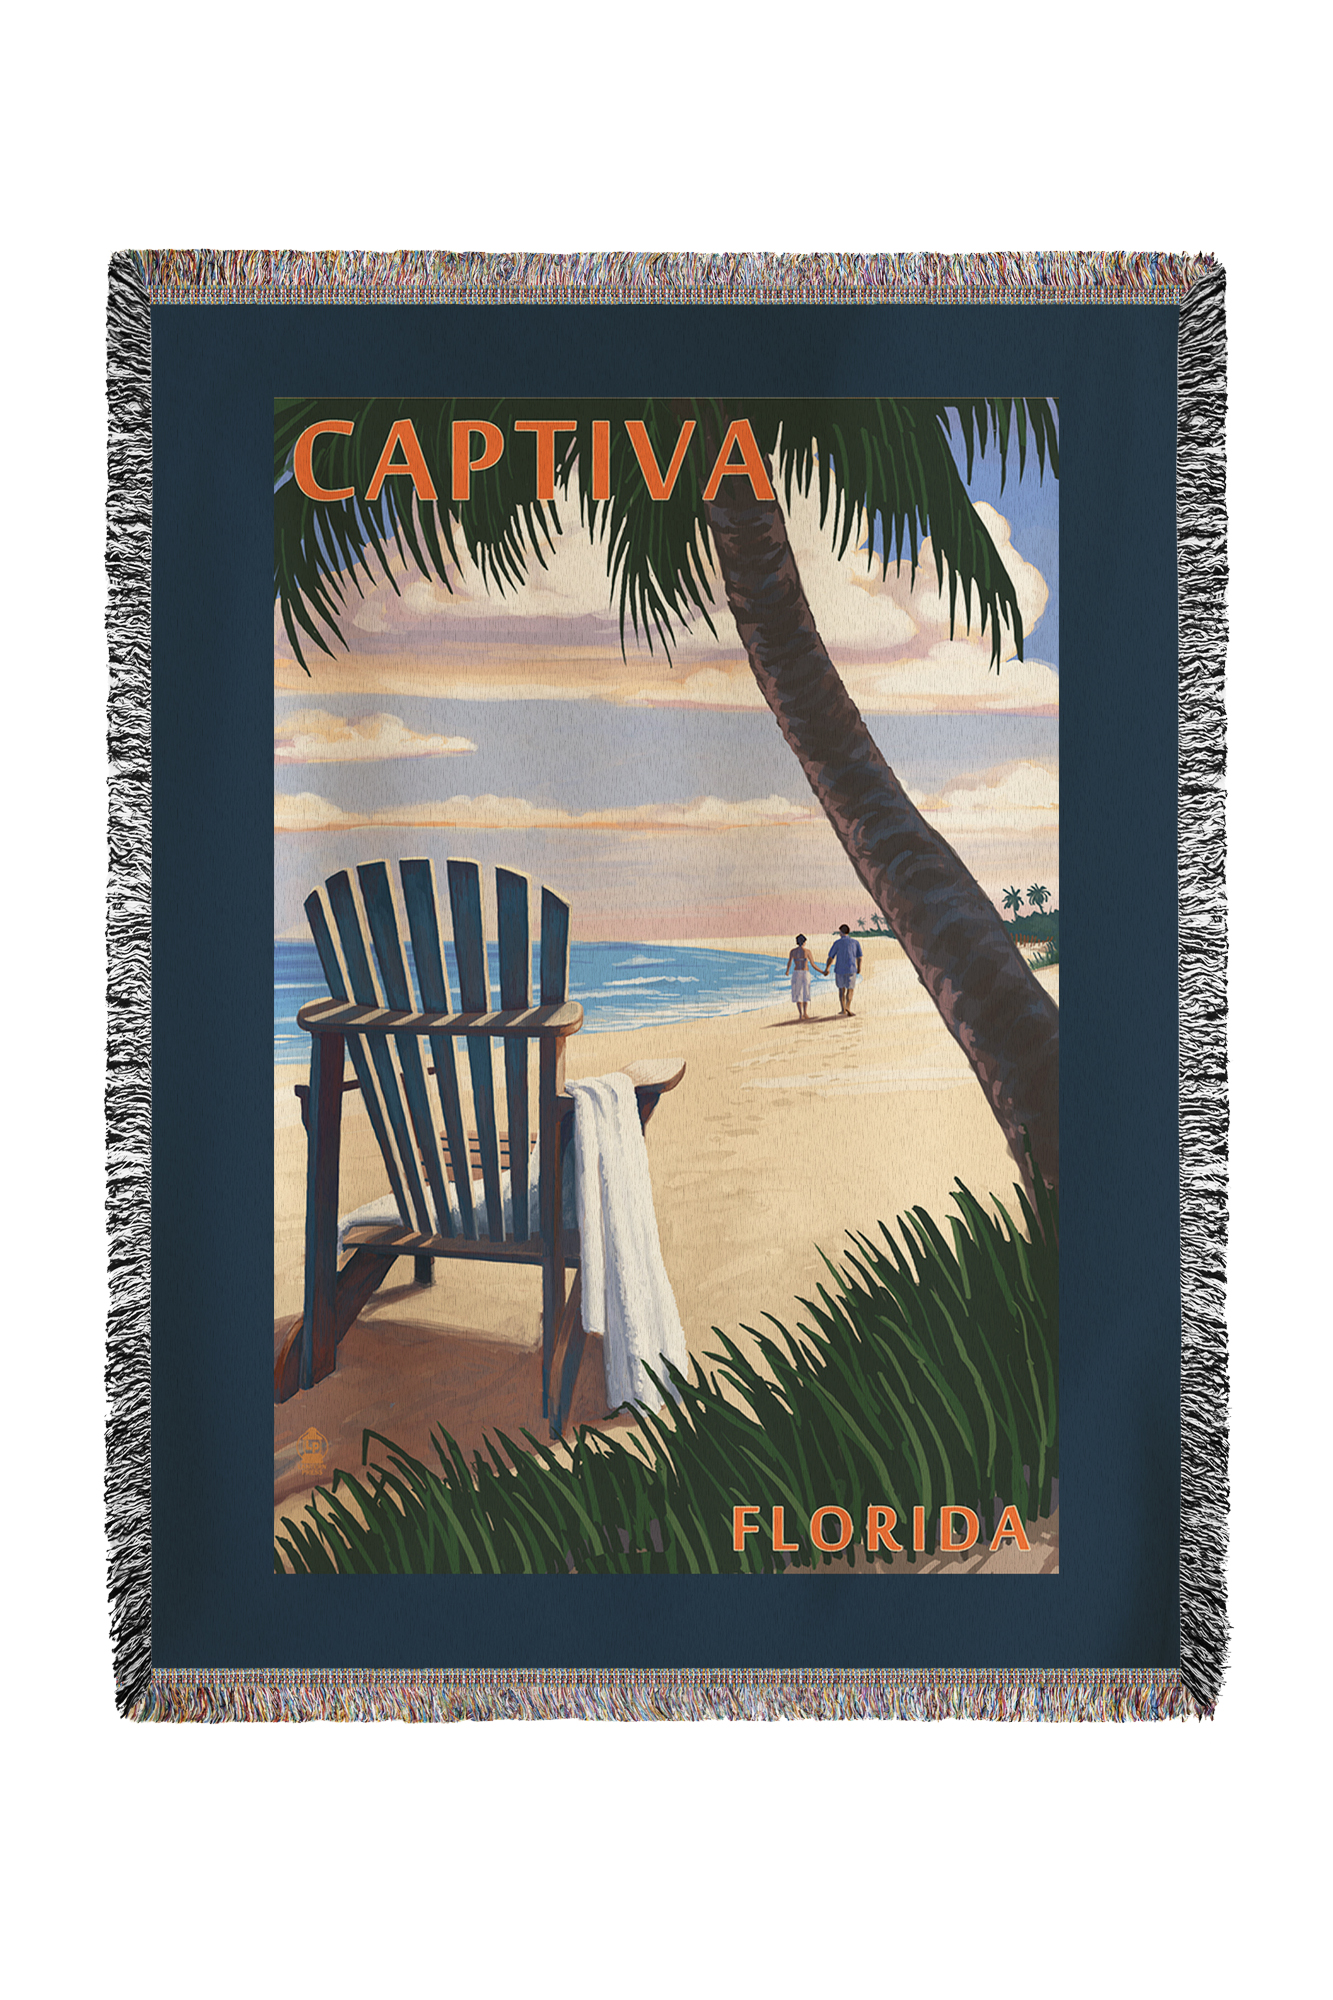 Captiva, Florida Adirondack Chair on the Beach Lantern Press Poster (60x80 Woven Chenille Yarn Blanket) by Lantern Press